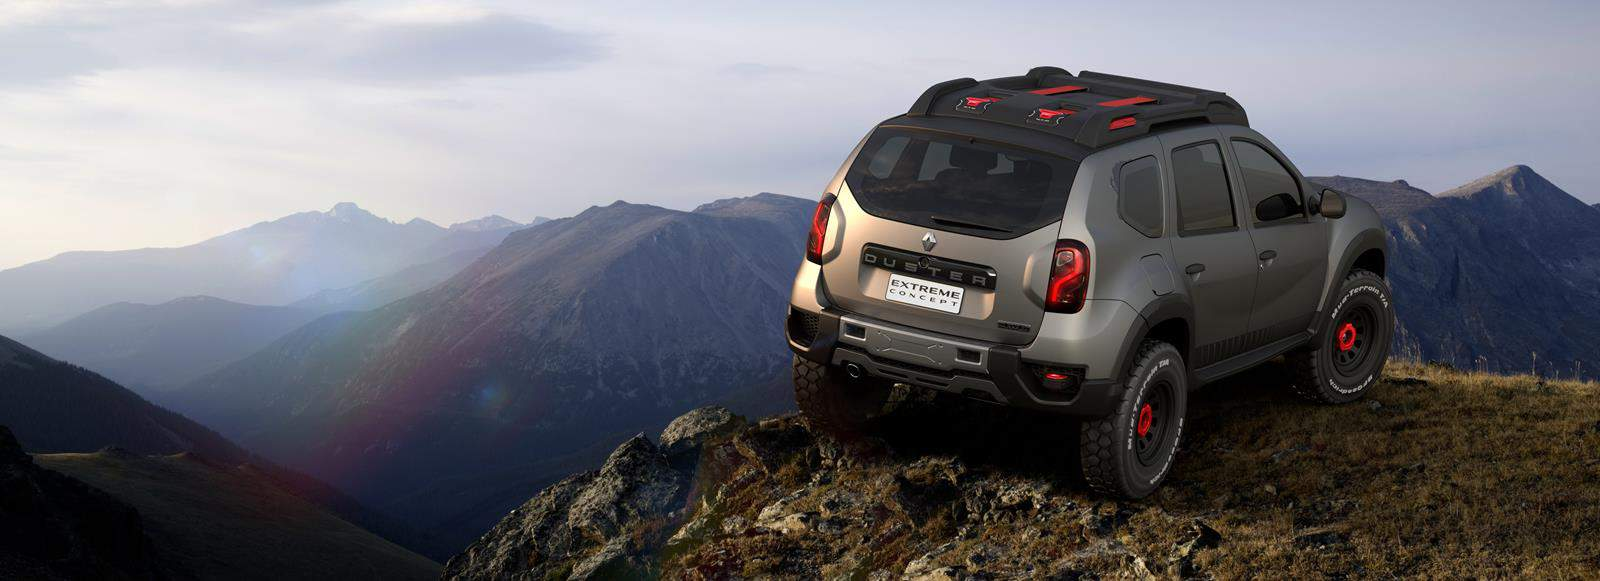 2016-renault-duster-extreme-concept-1